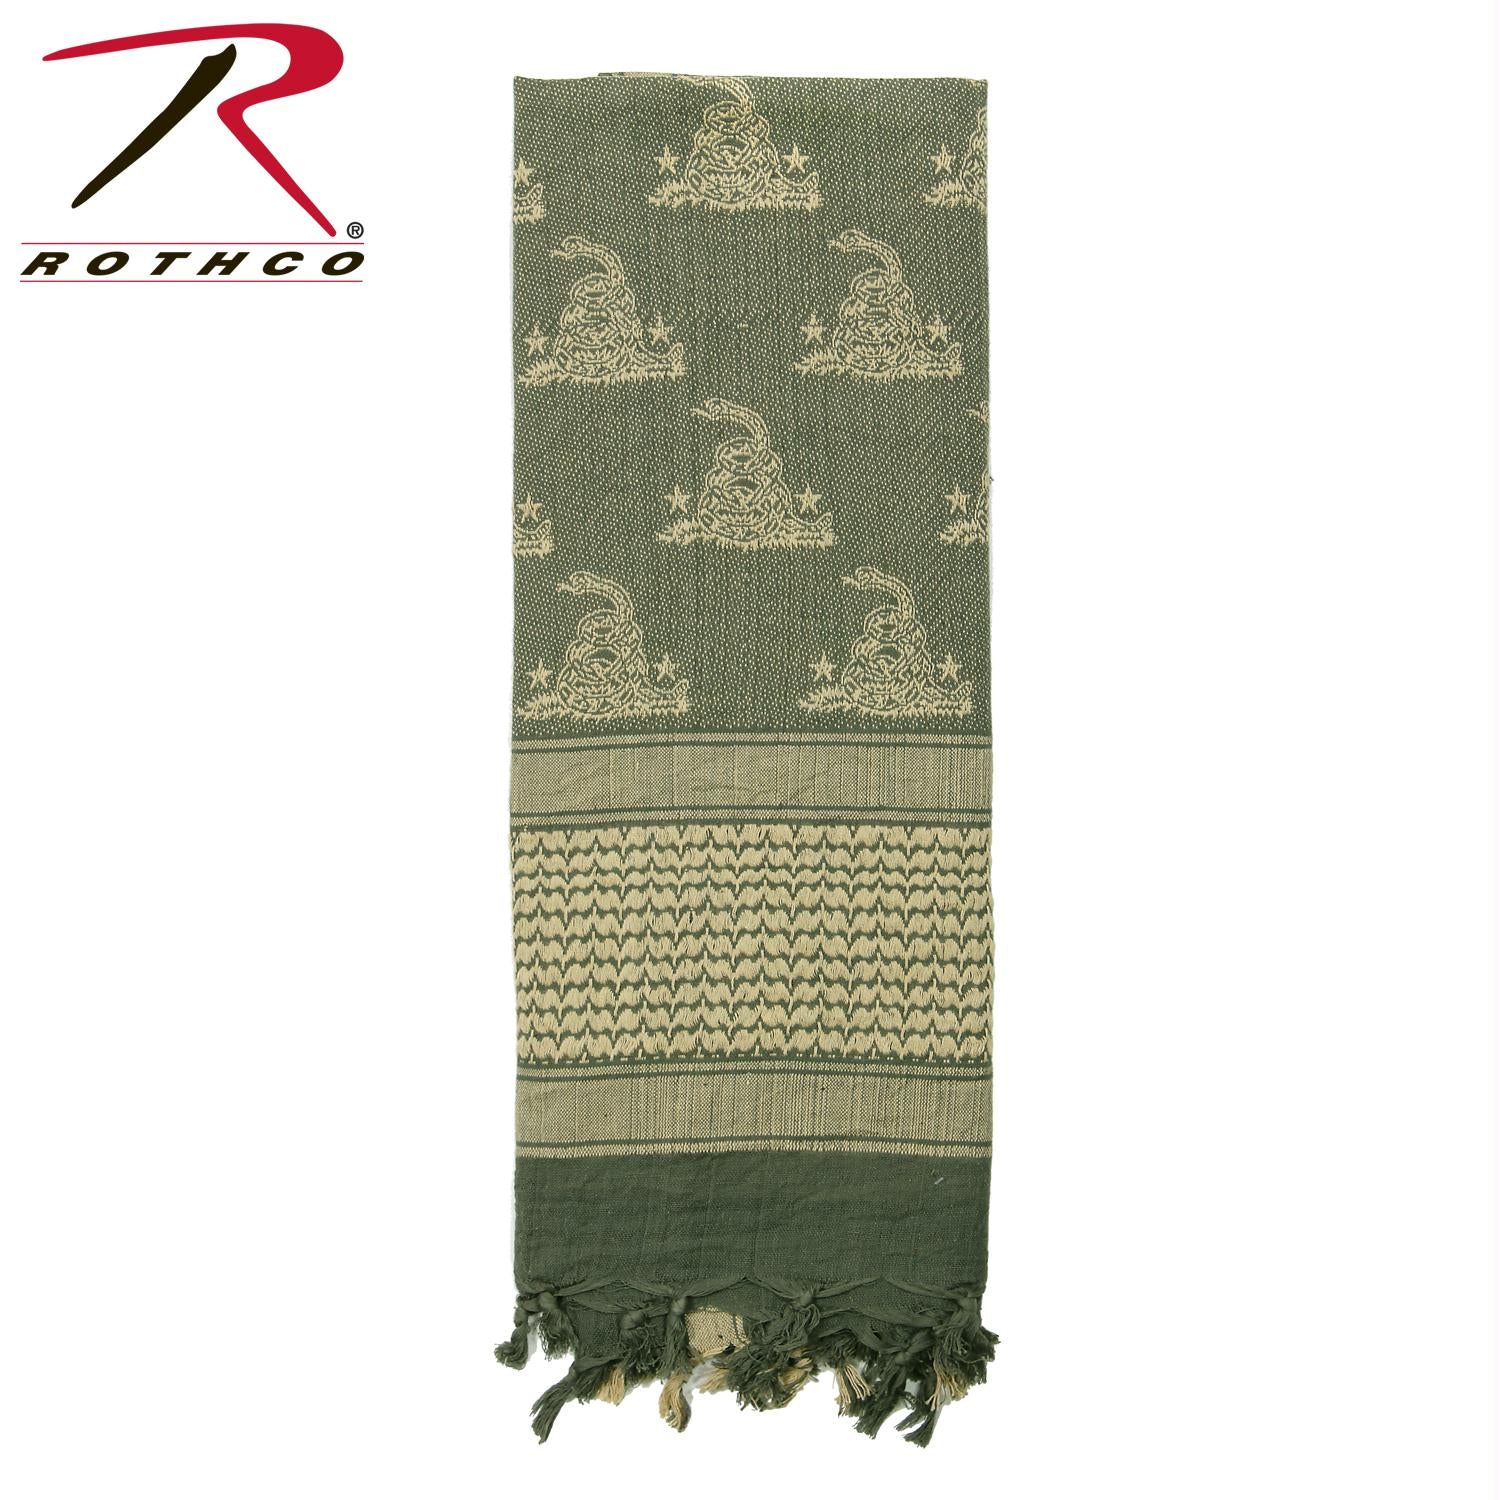 Rothco Gadsden Snake Shemagh Tactical Desert Scarf - Foliage Green